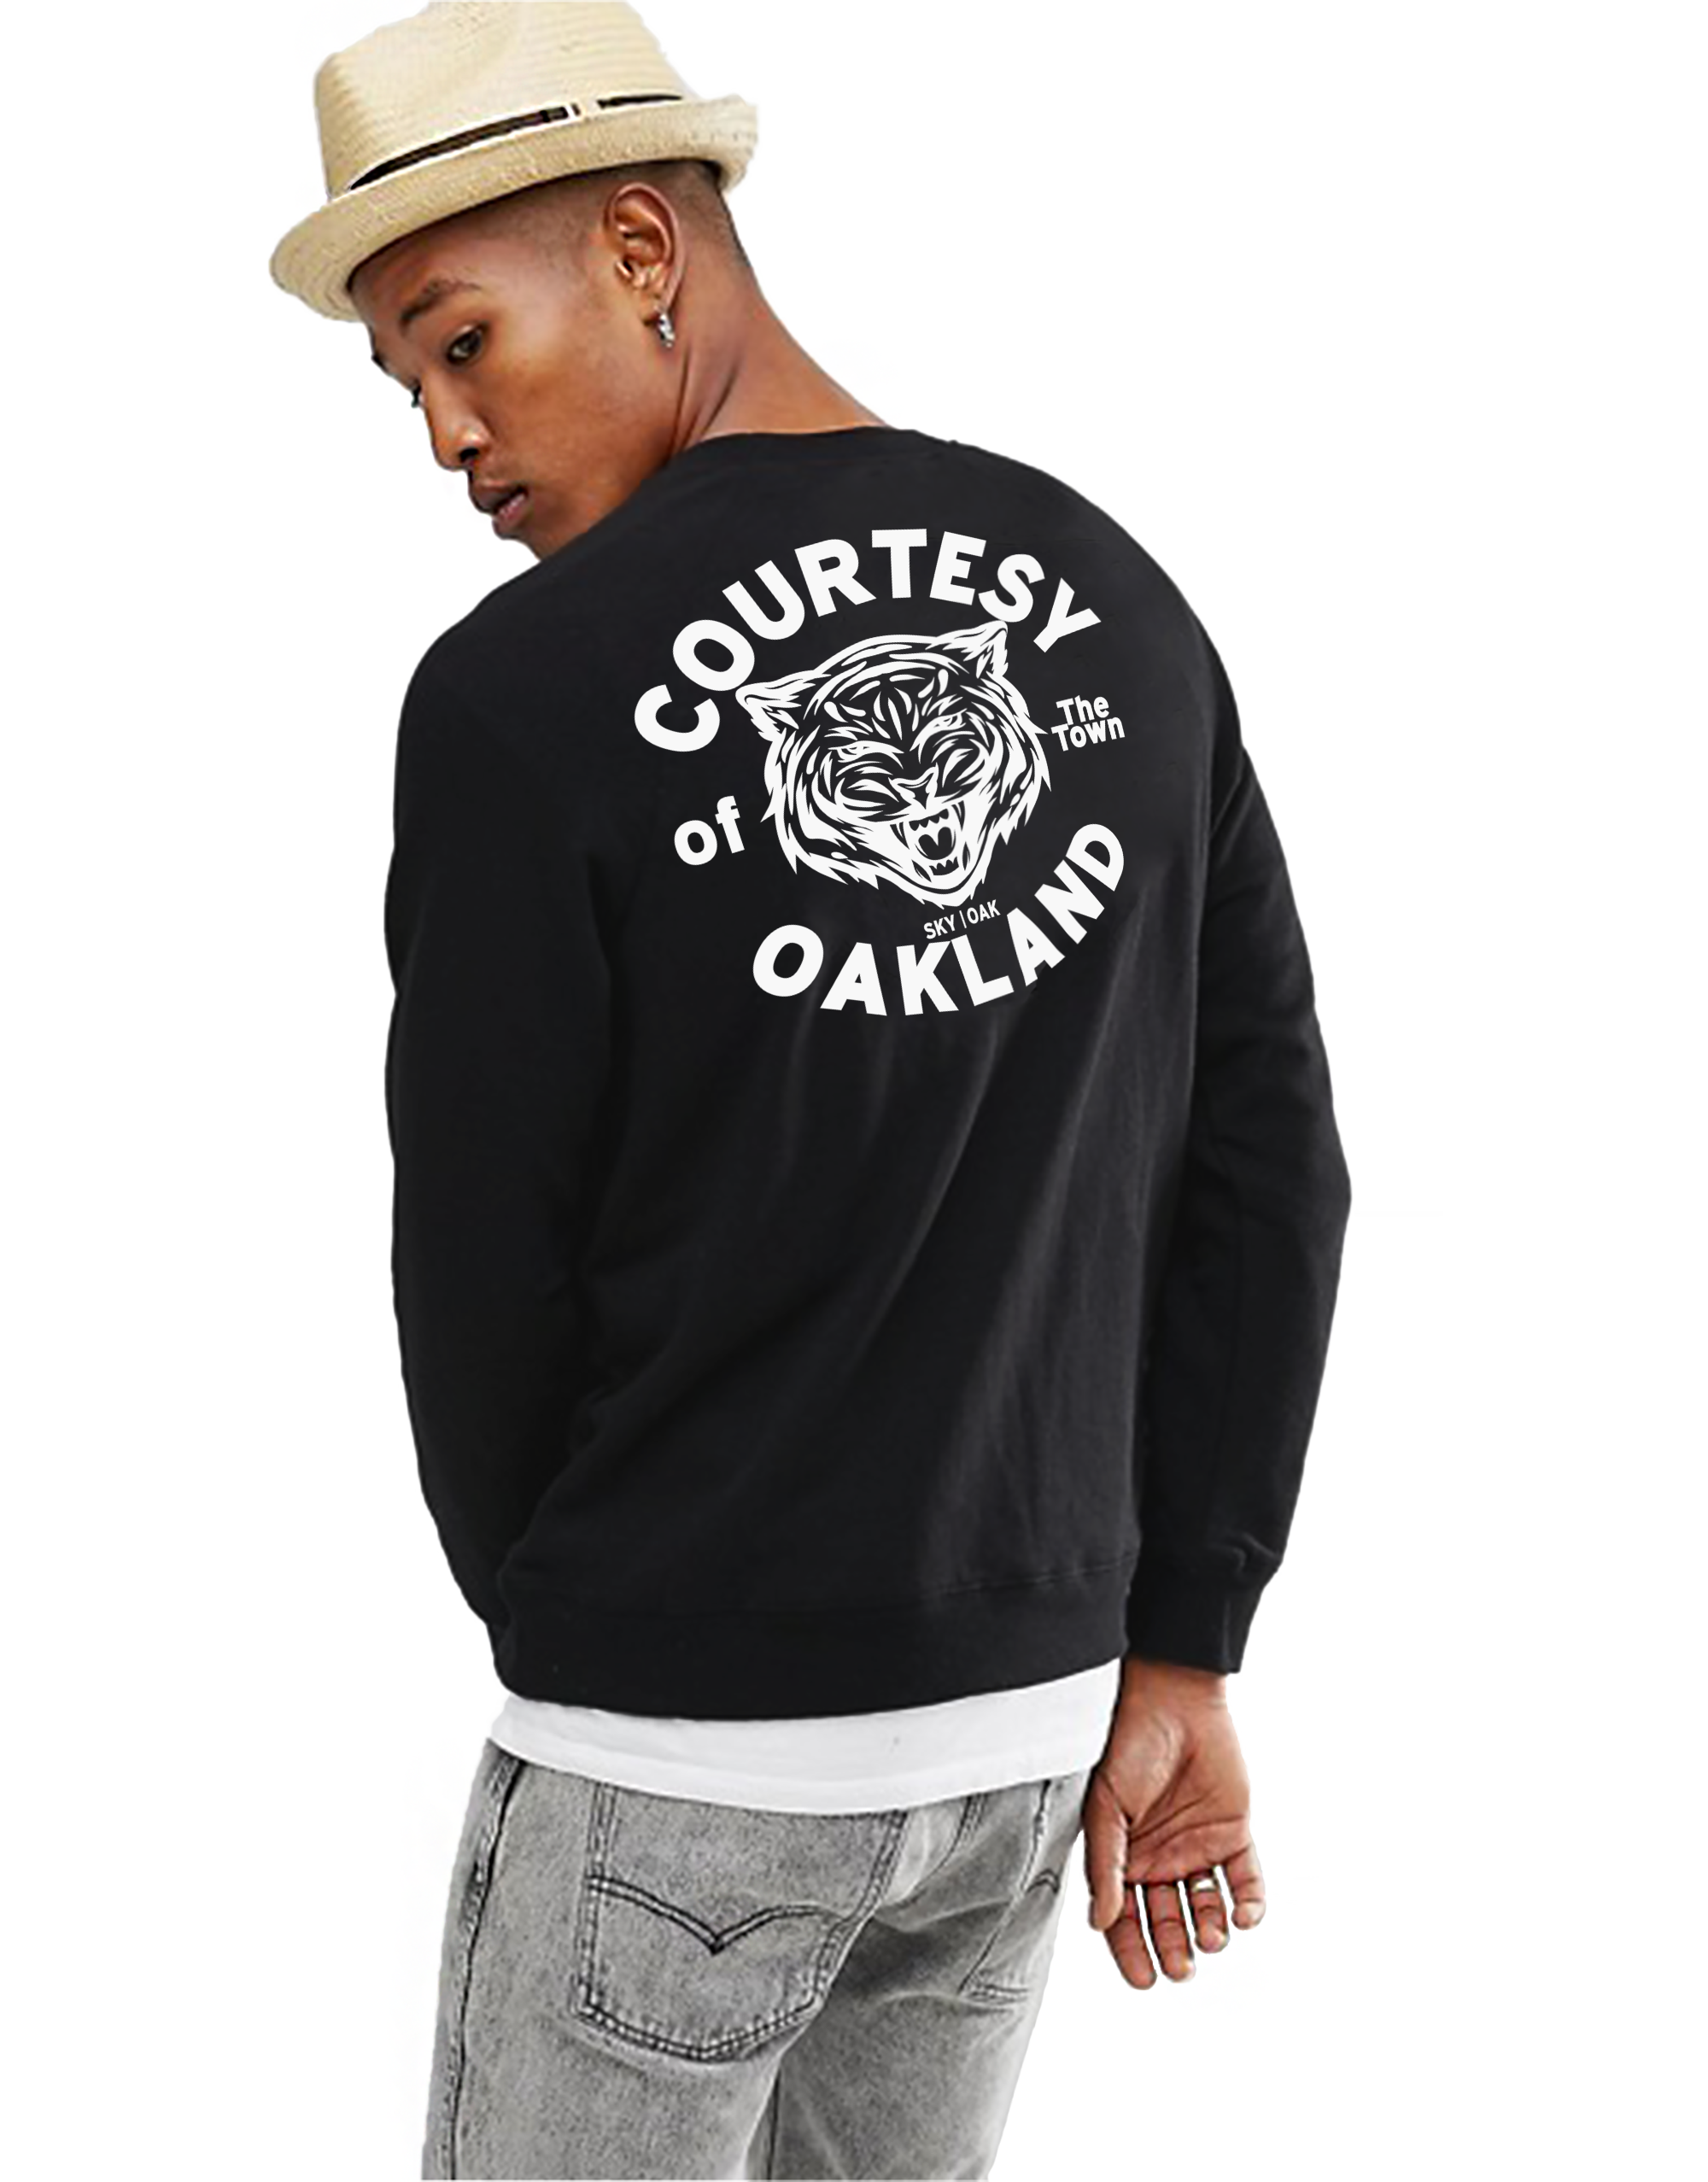 Sky Oak Co_Courtesy of Oakland_crewneck_black_white_model_rear_large_print_home_page.png